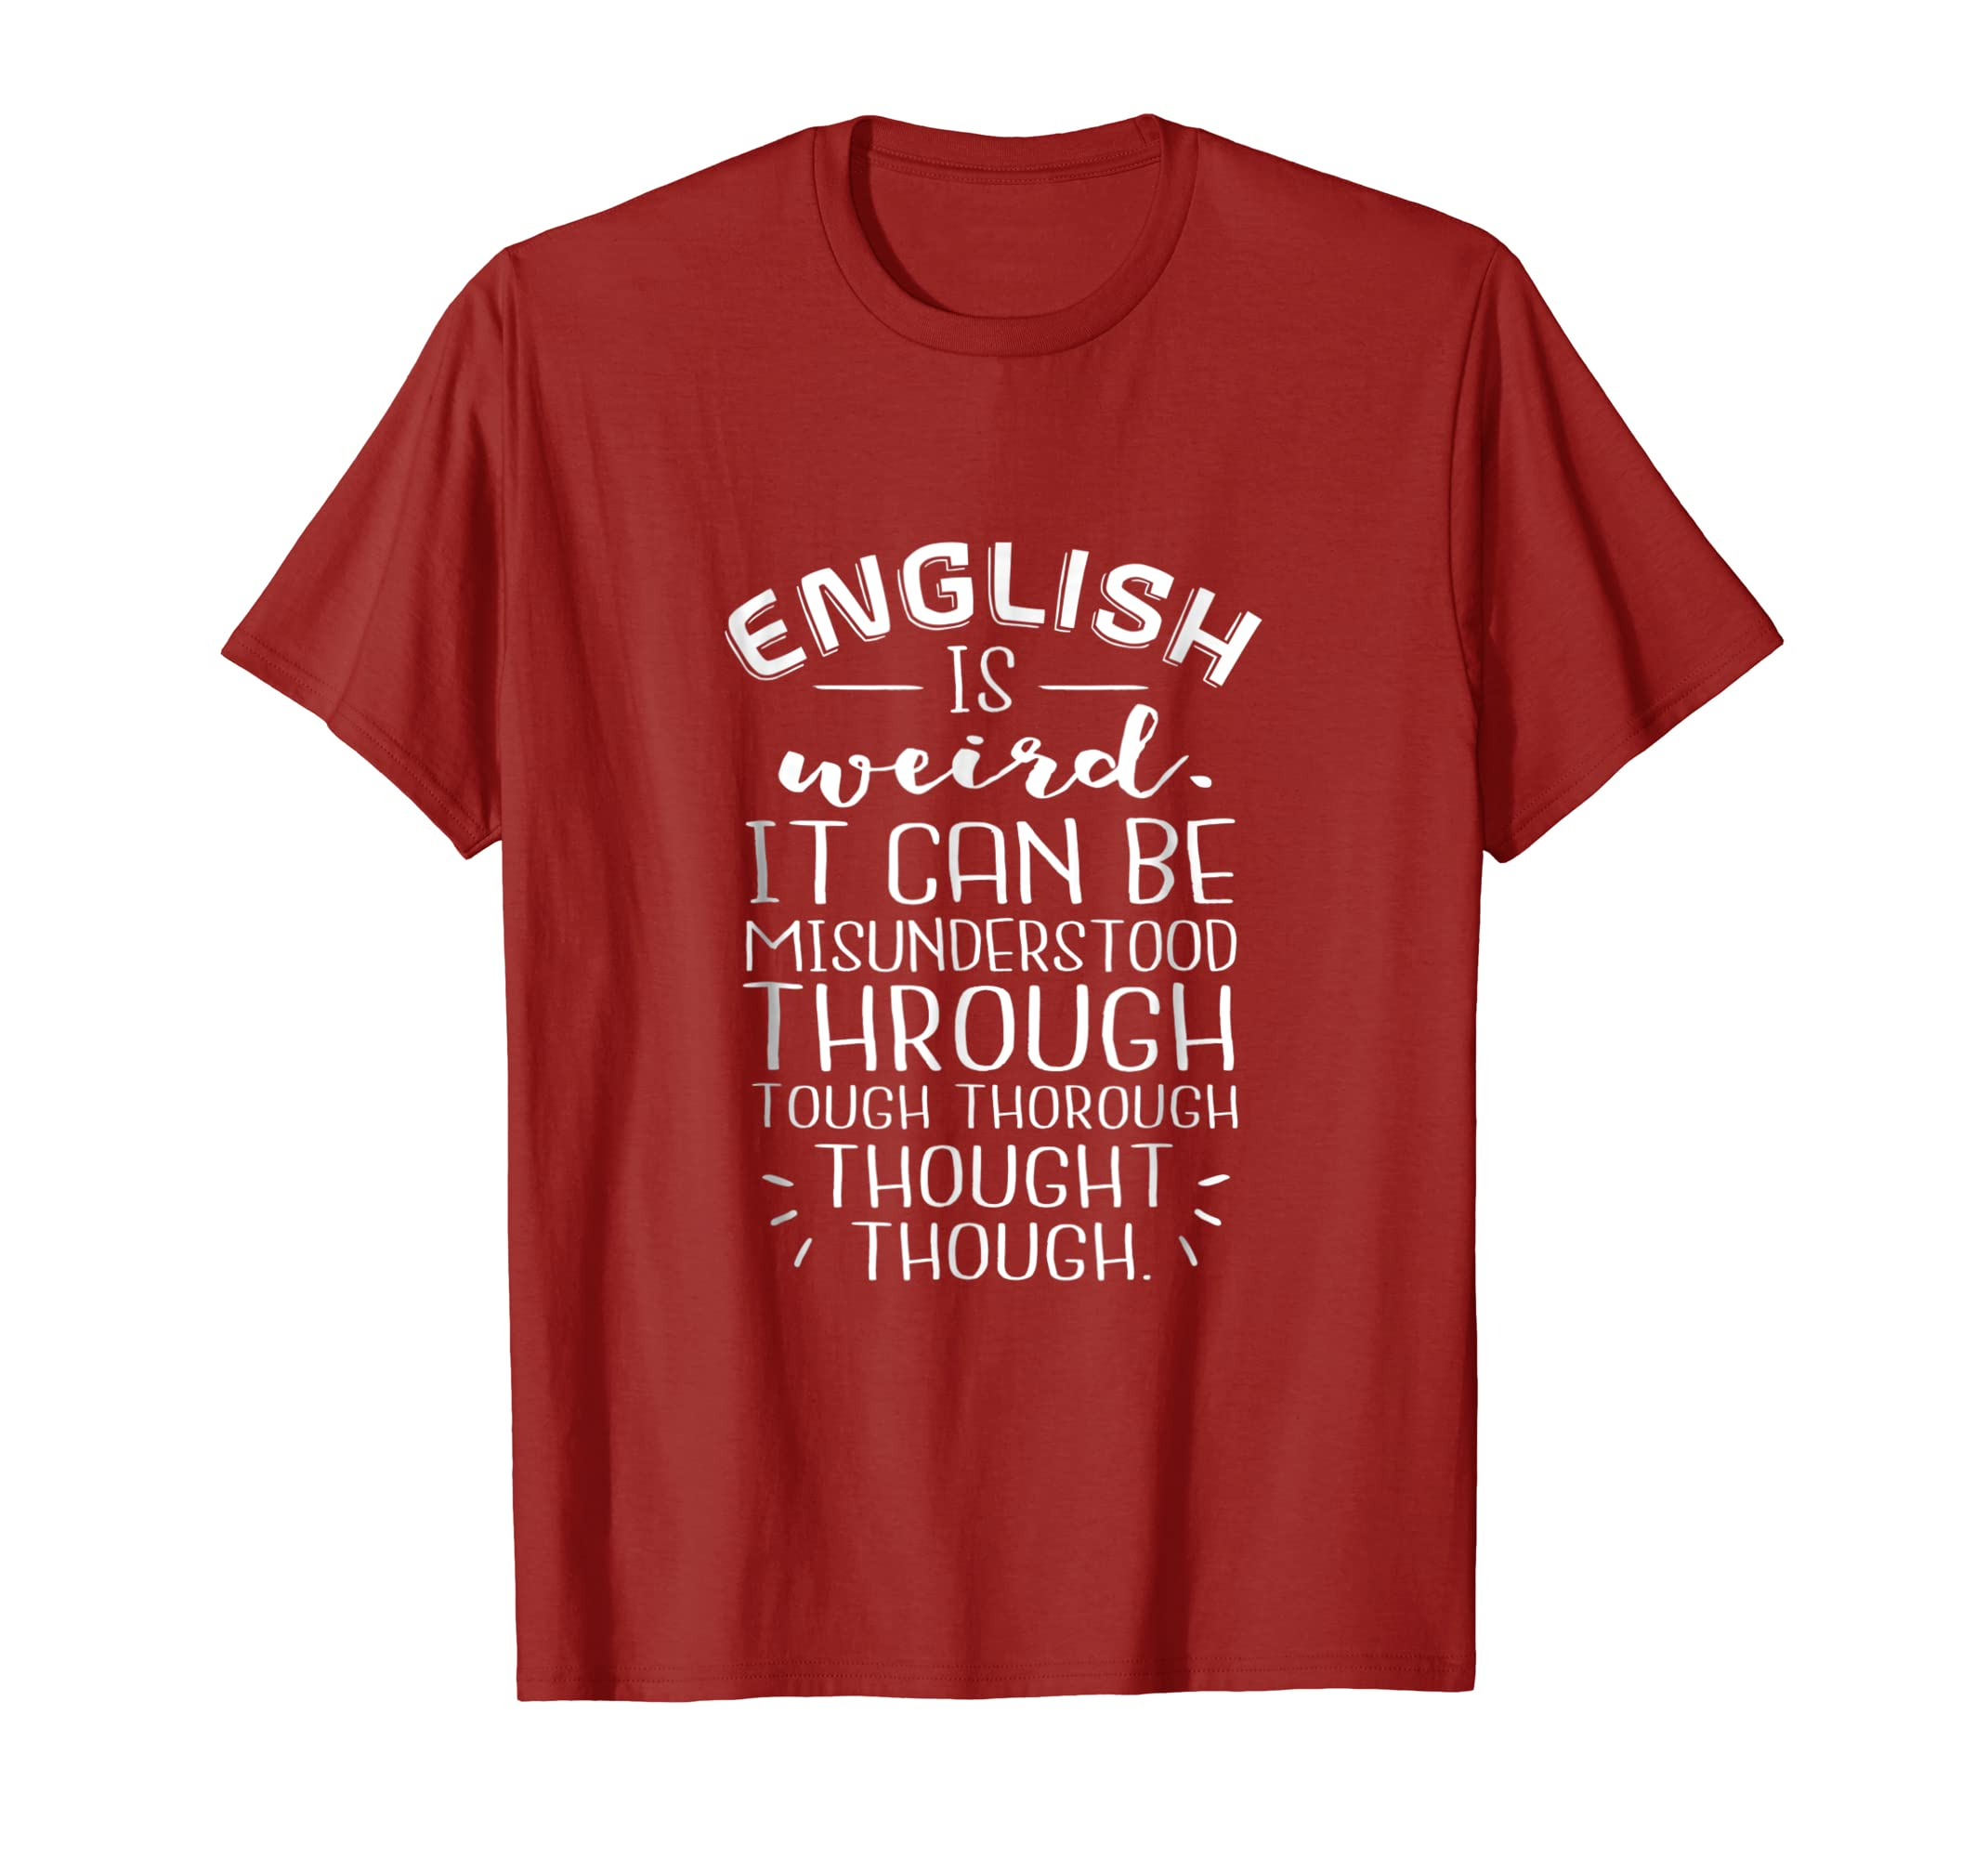 5e201cff Amazon.com: English Is Weird - Funny English Shirt: Clothing